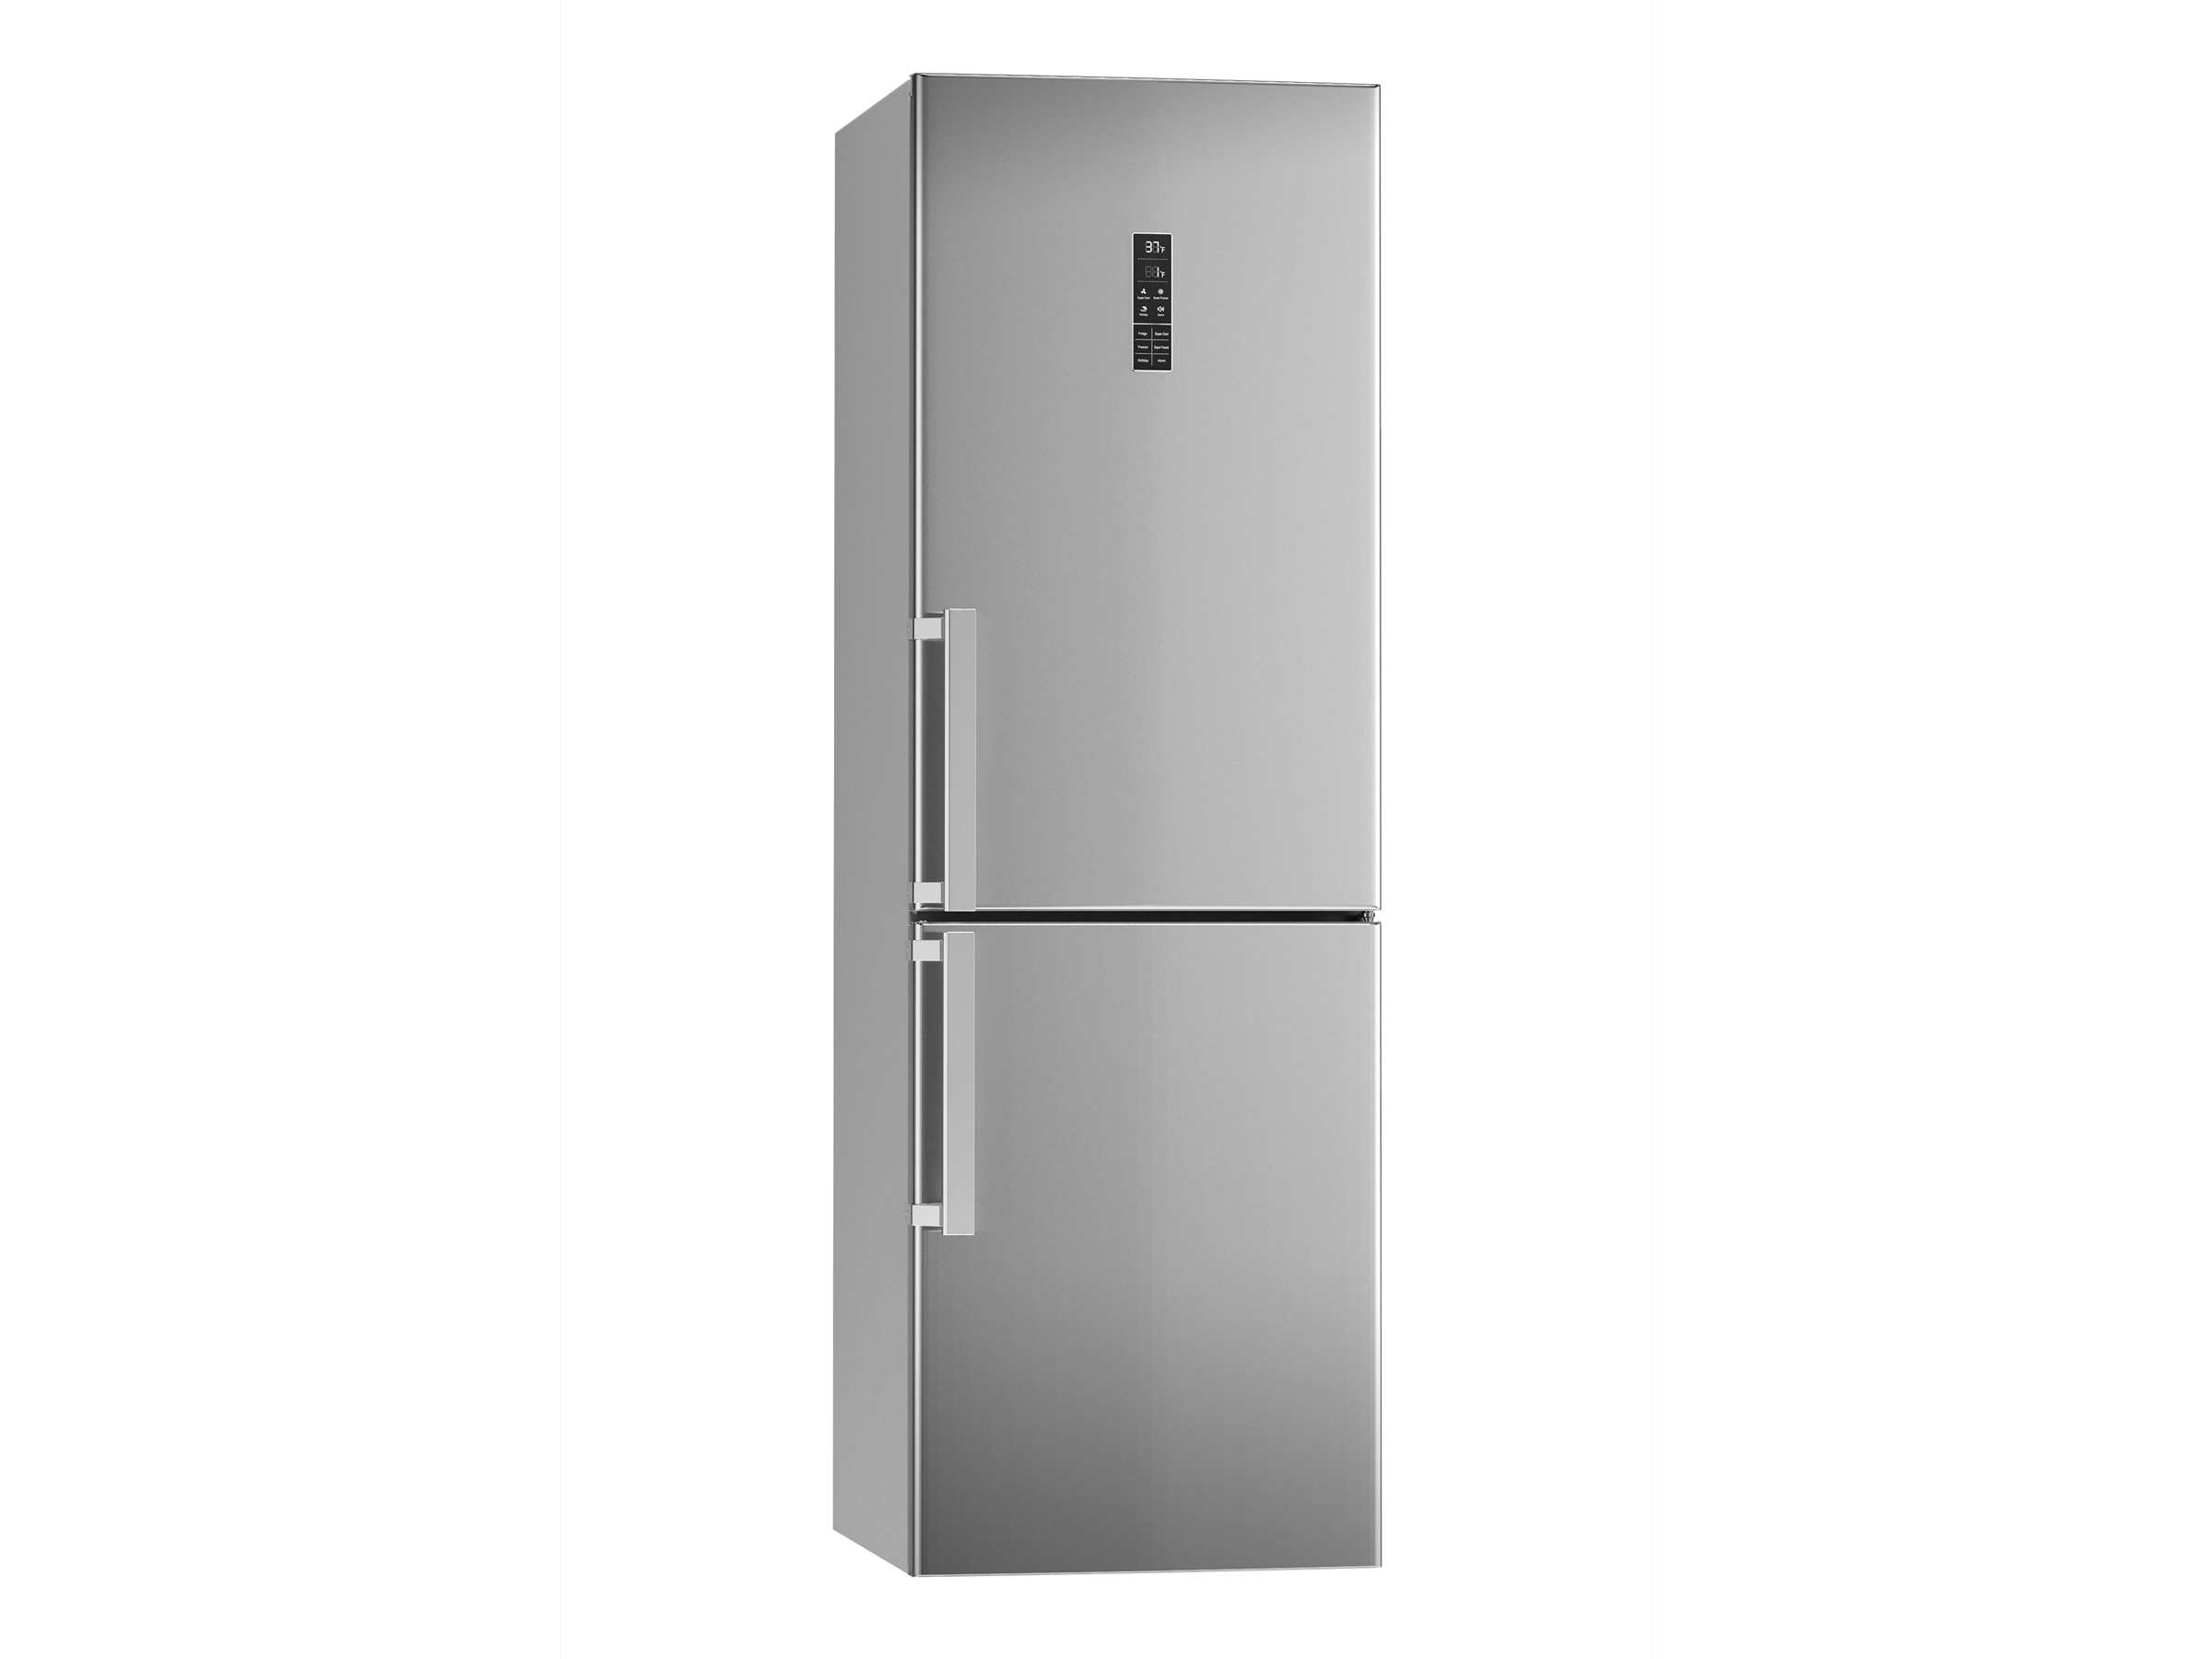 24 inch Freestanding Bottom Mount | Bertazzoni - Stainless